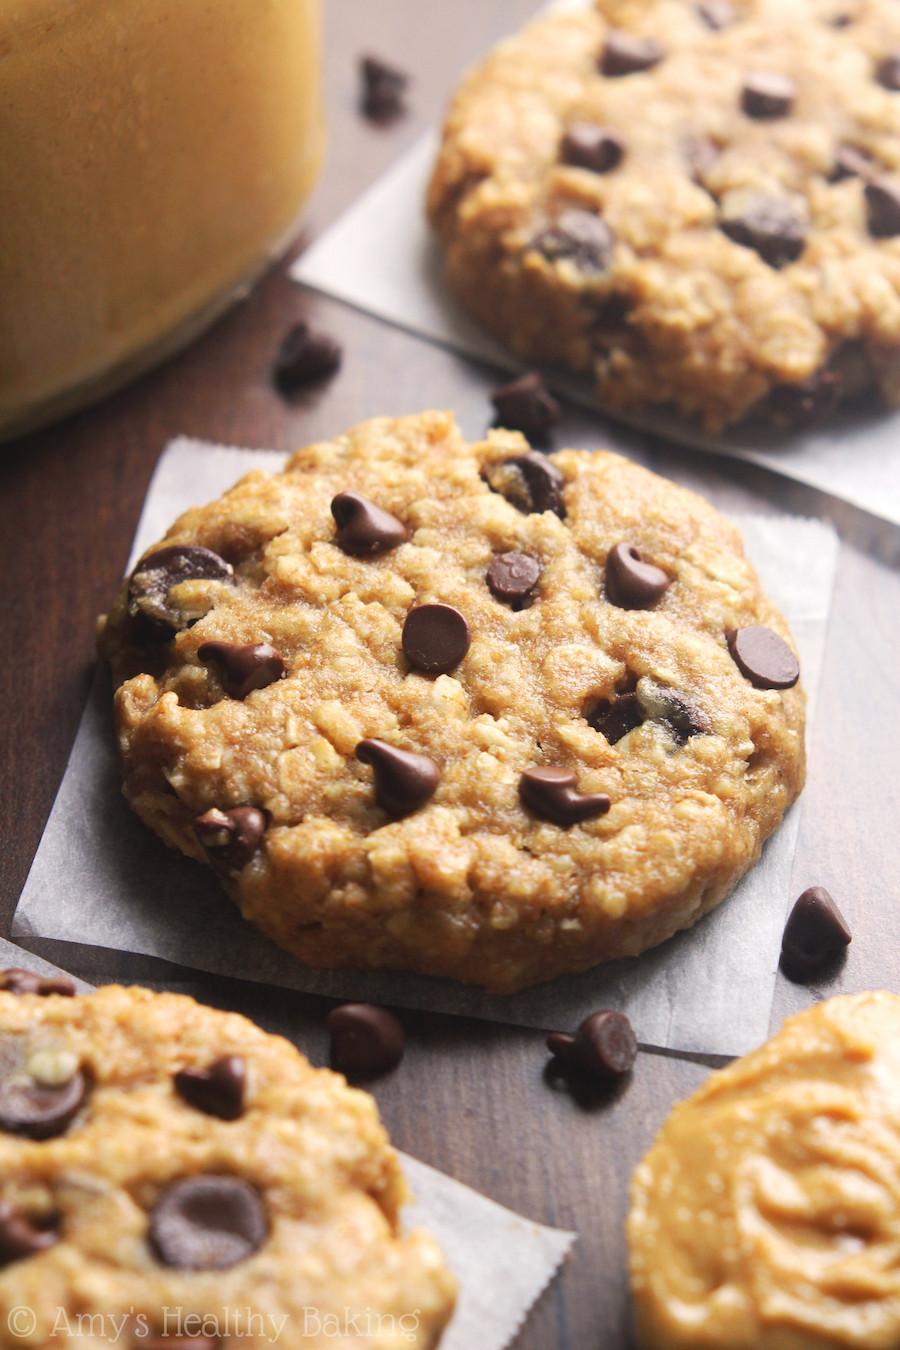 Oatmeal Cookies Recipe Healthy  Chocolate Chip Peanut Butter Oatmeal Cookies Recipe Video